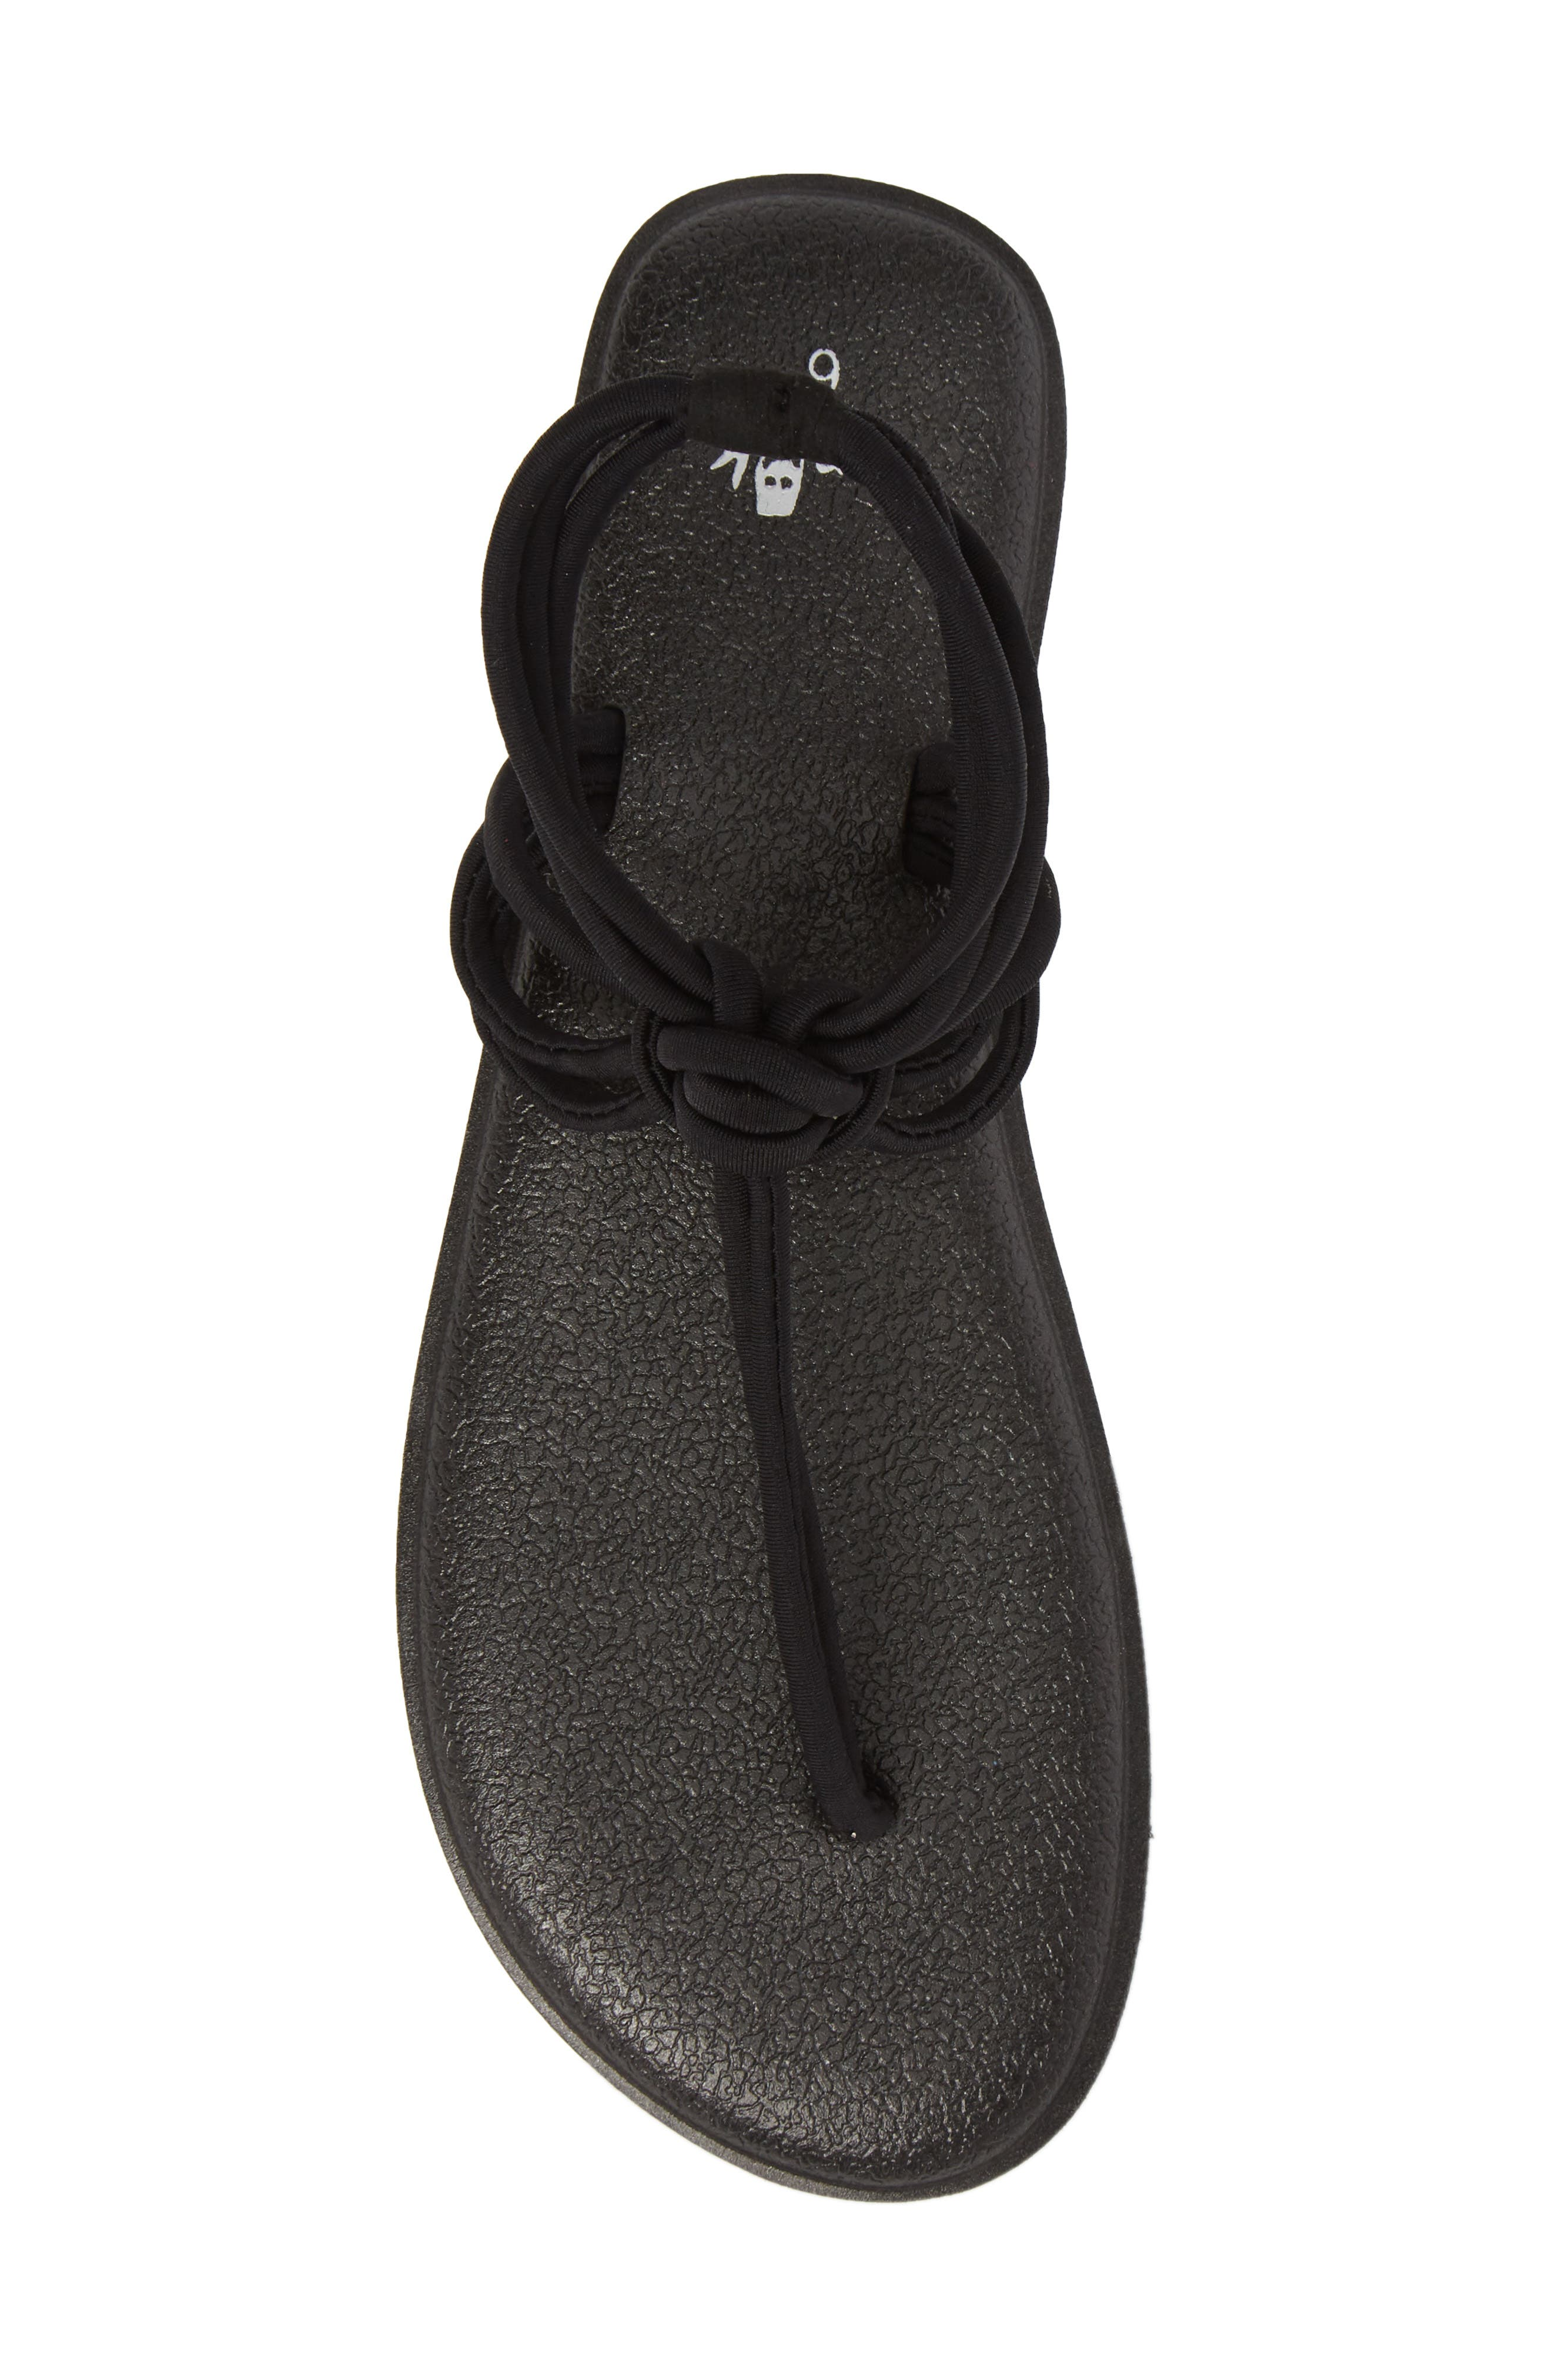 Yoga Sunshine Knotted Thong Sandal,                             Alternate thumbnail 5, color,                             Black